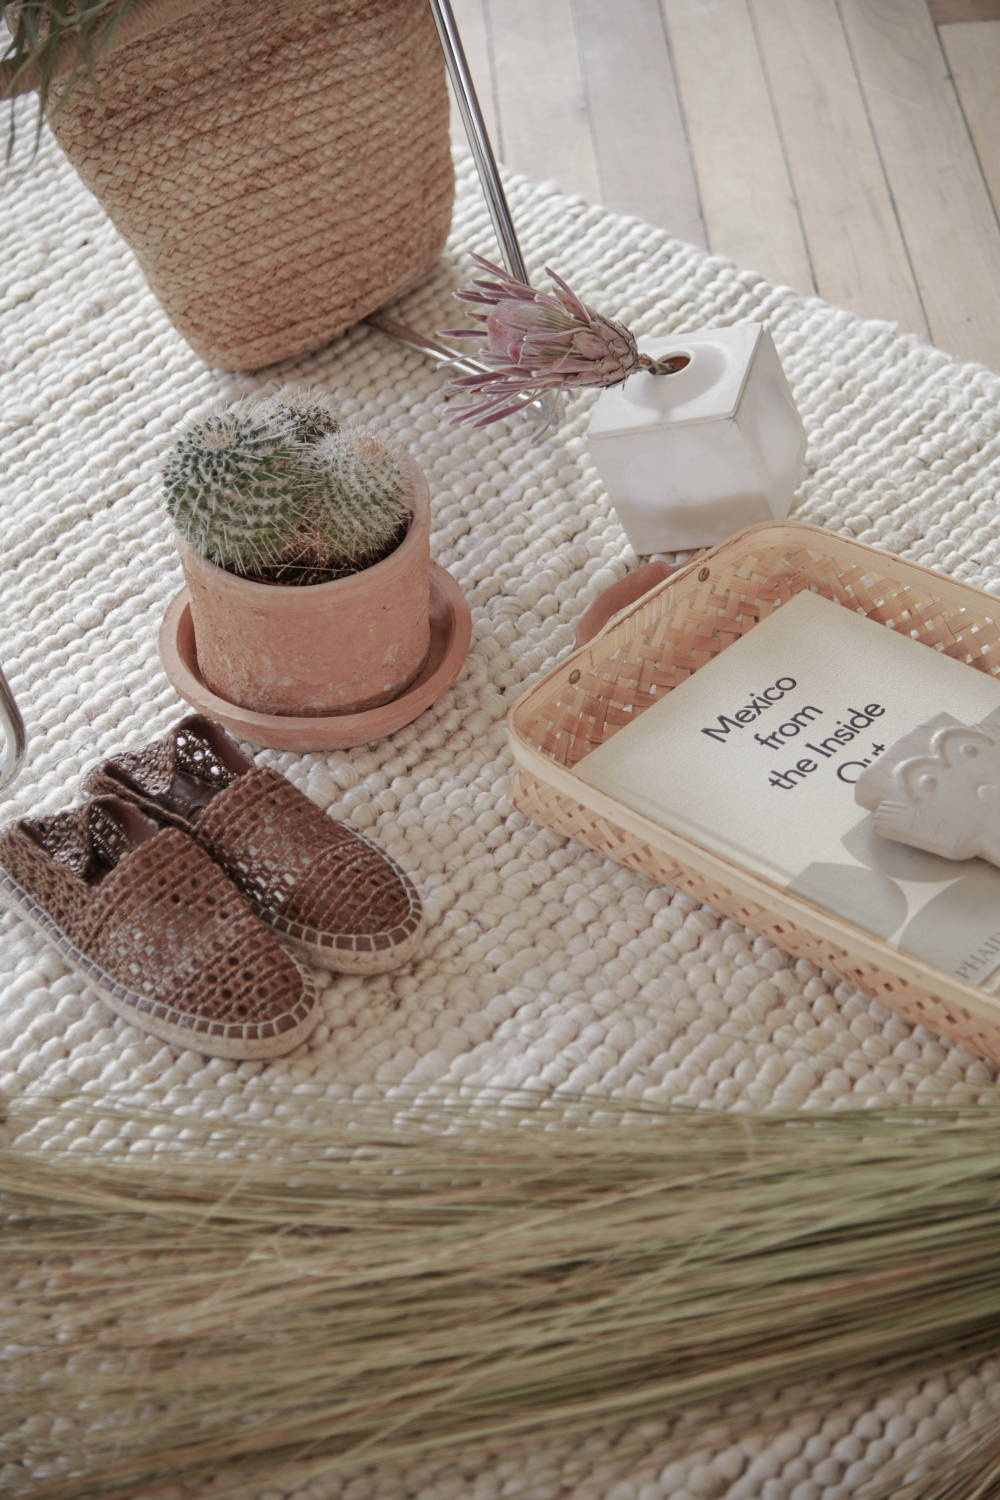 reeds with cactus, woven slippers and woven tray